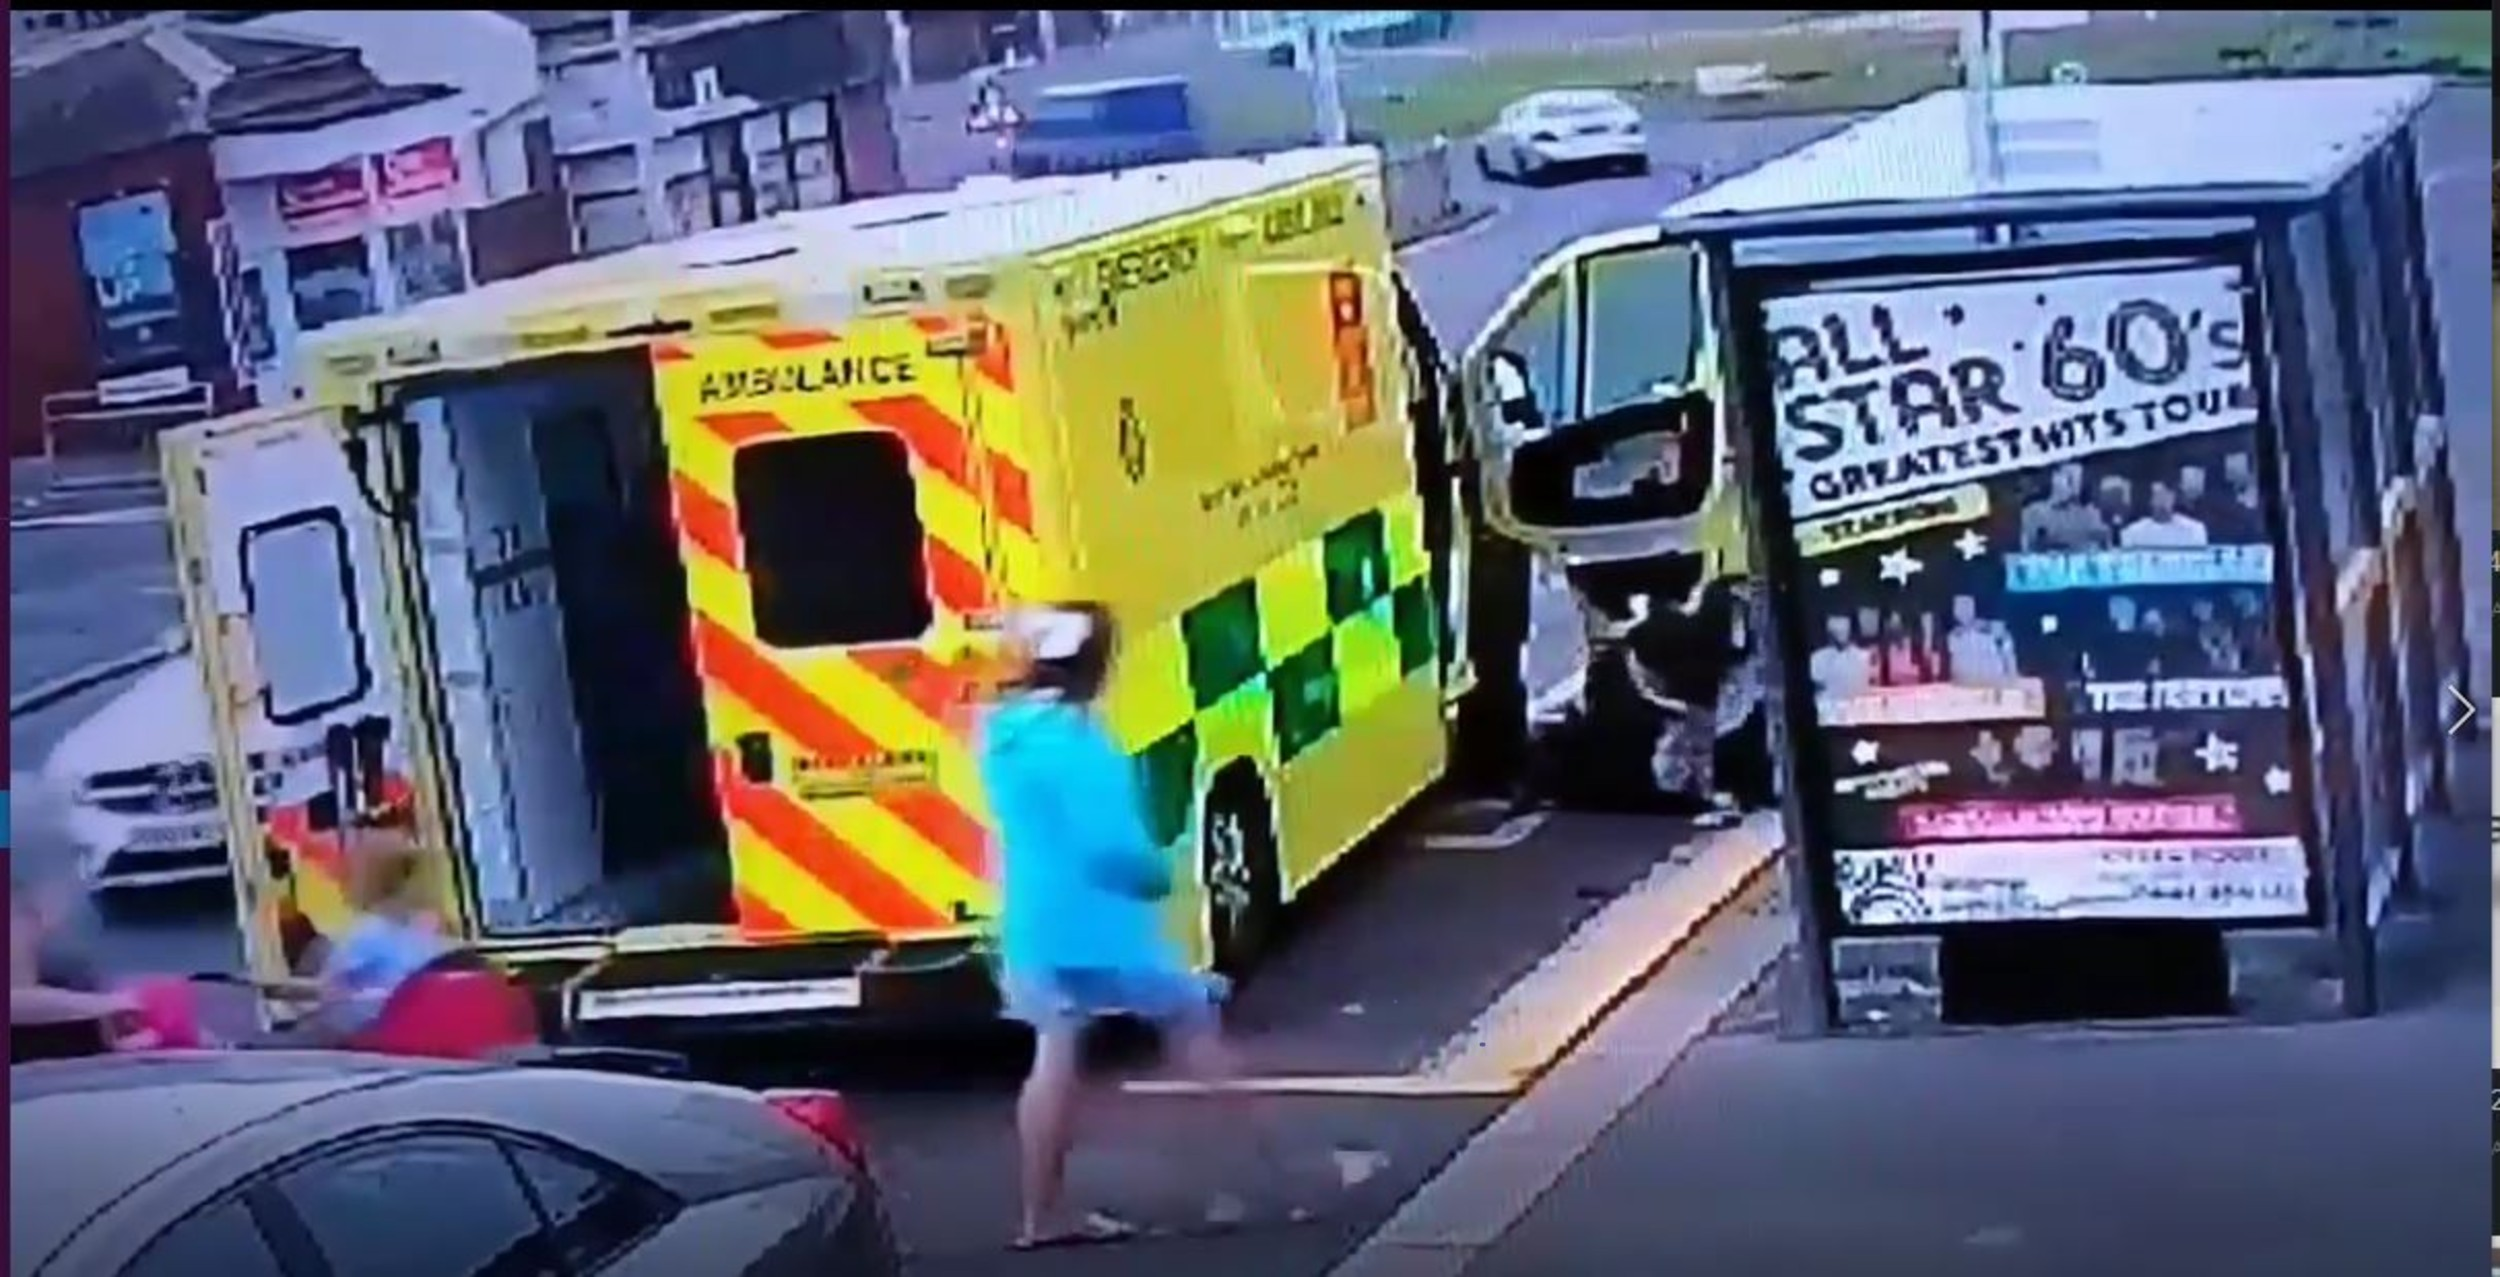 Two paramedics apprehend the man while a family walks by| By Deadline News, Viral Video News